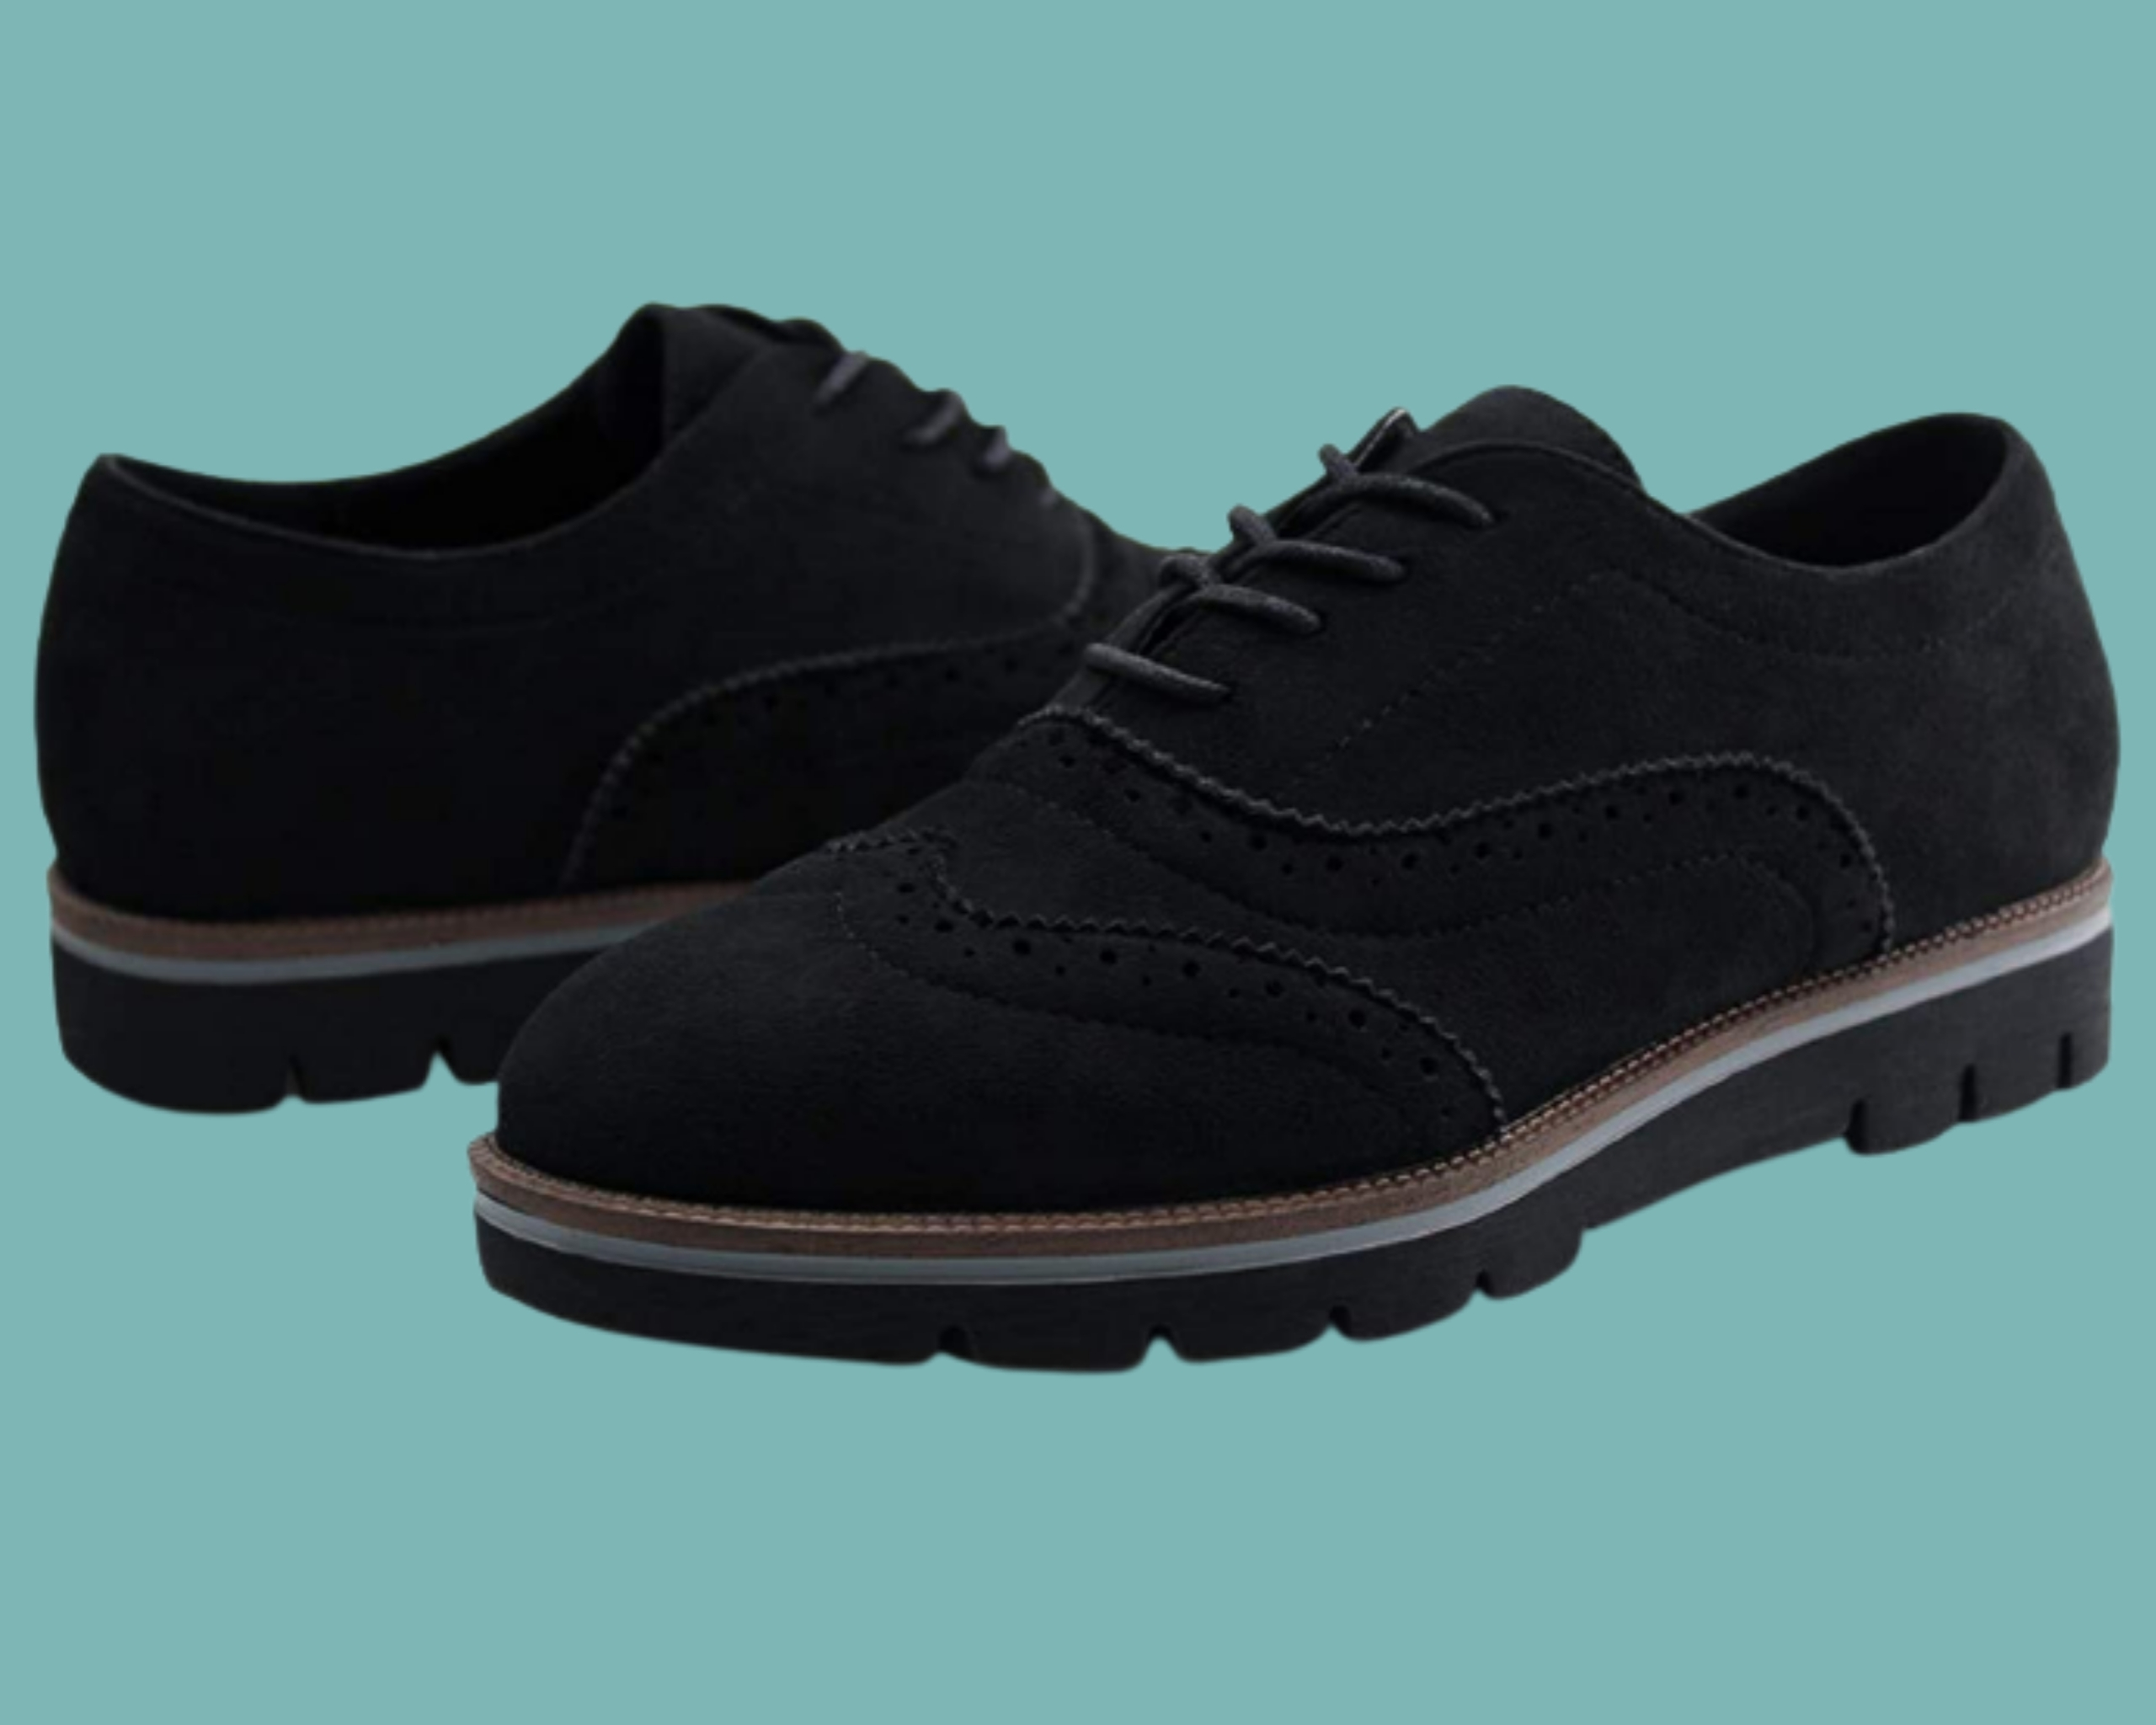 Best Oxford shoes for women